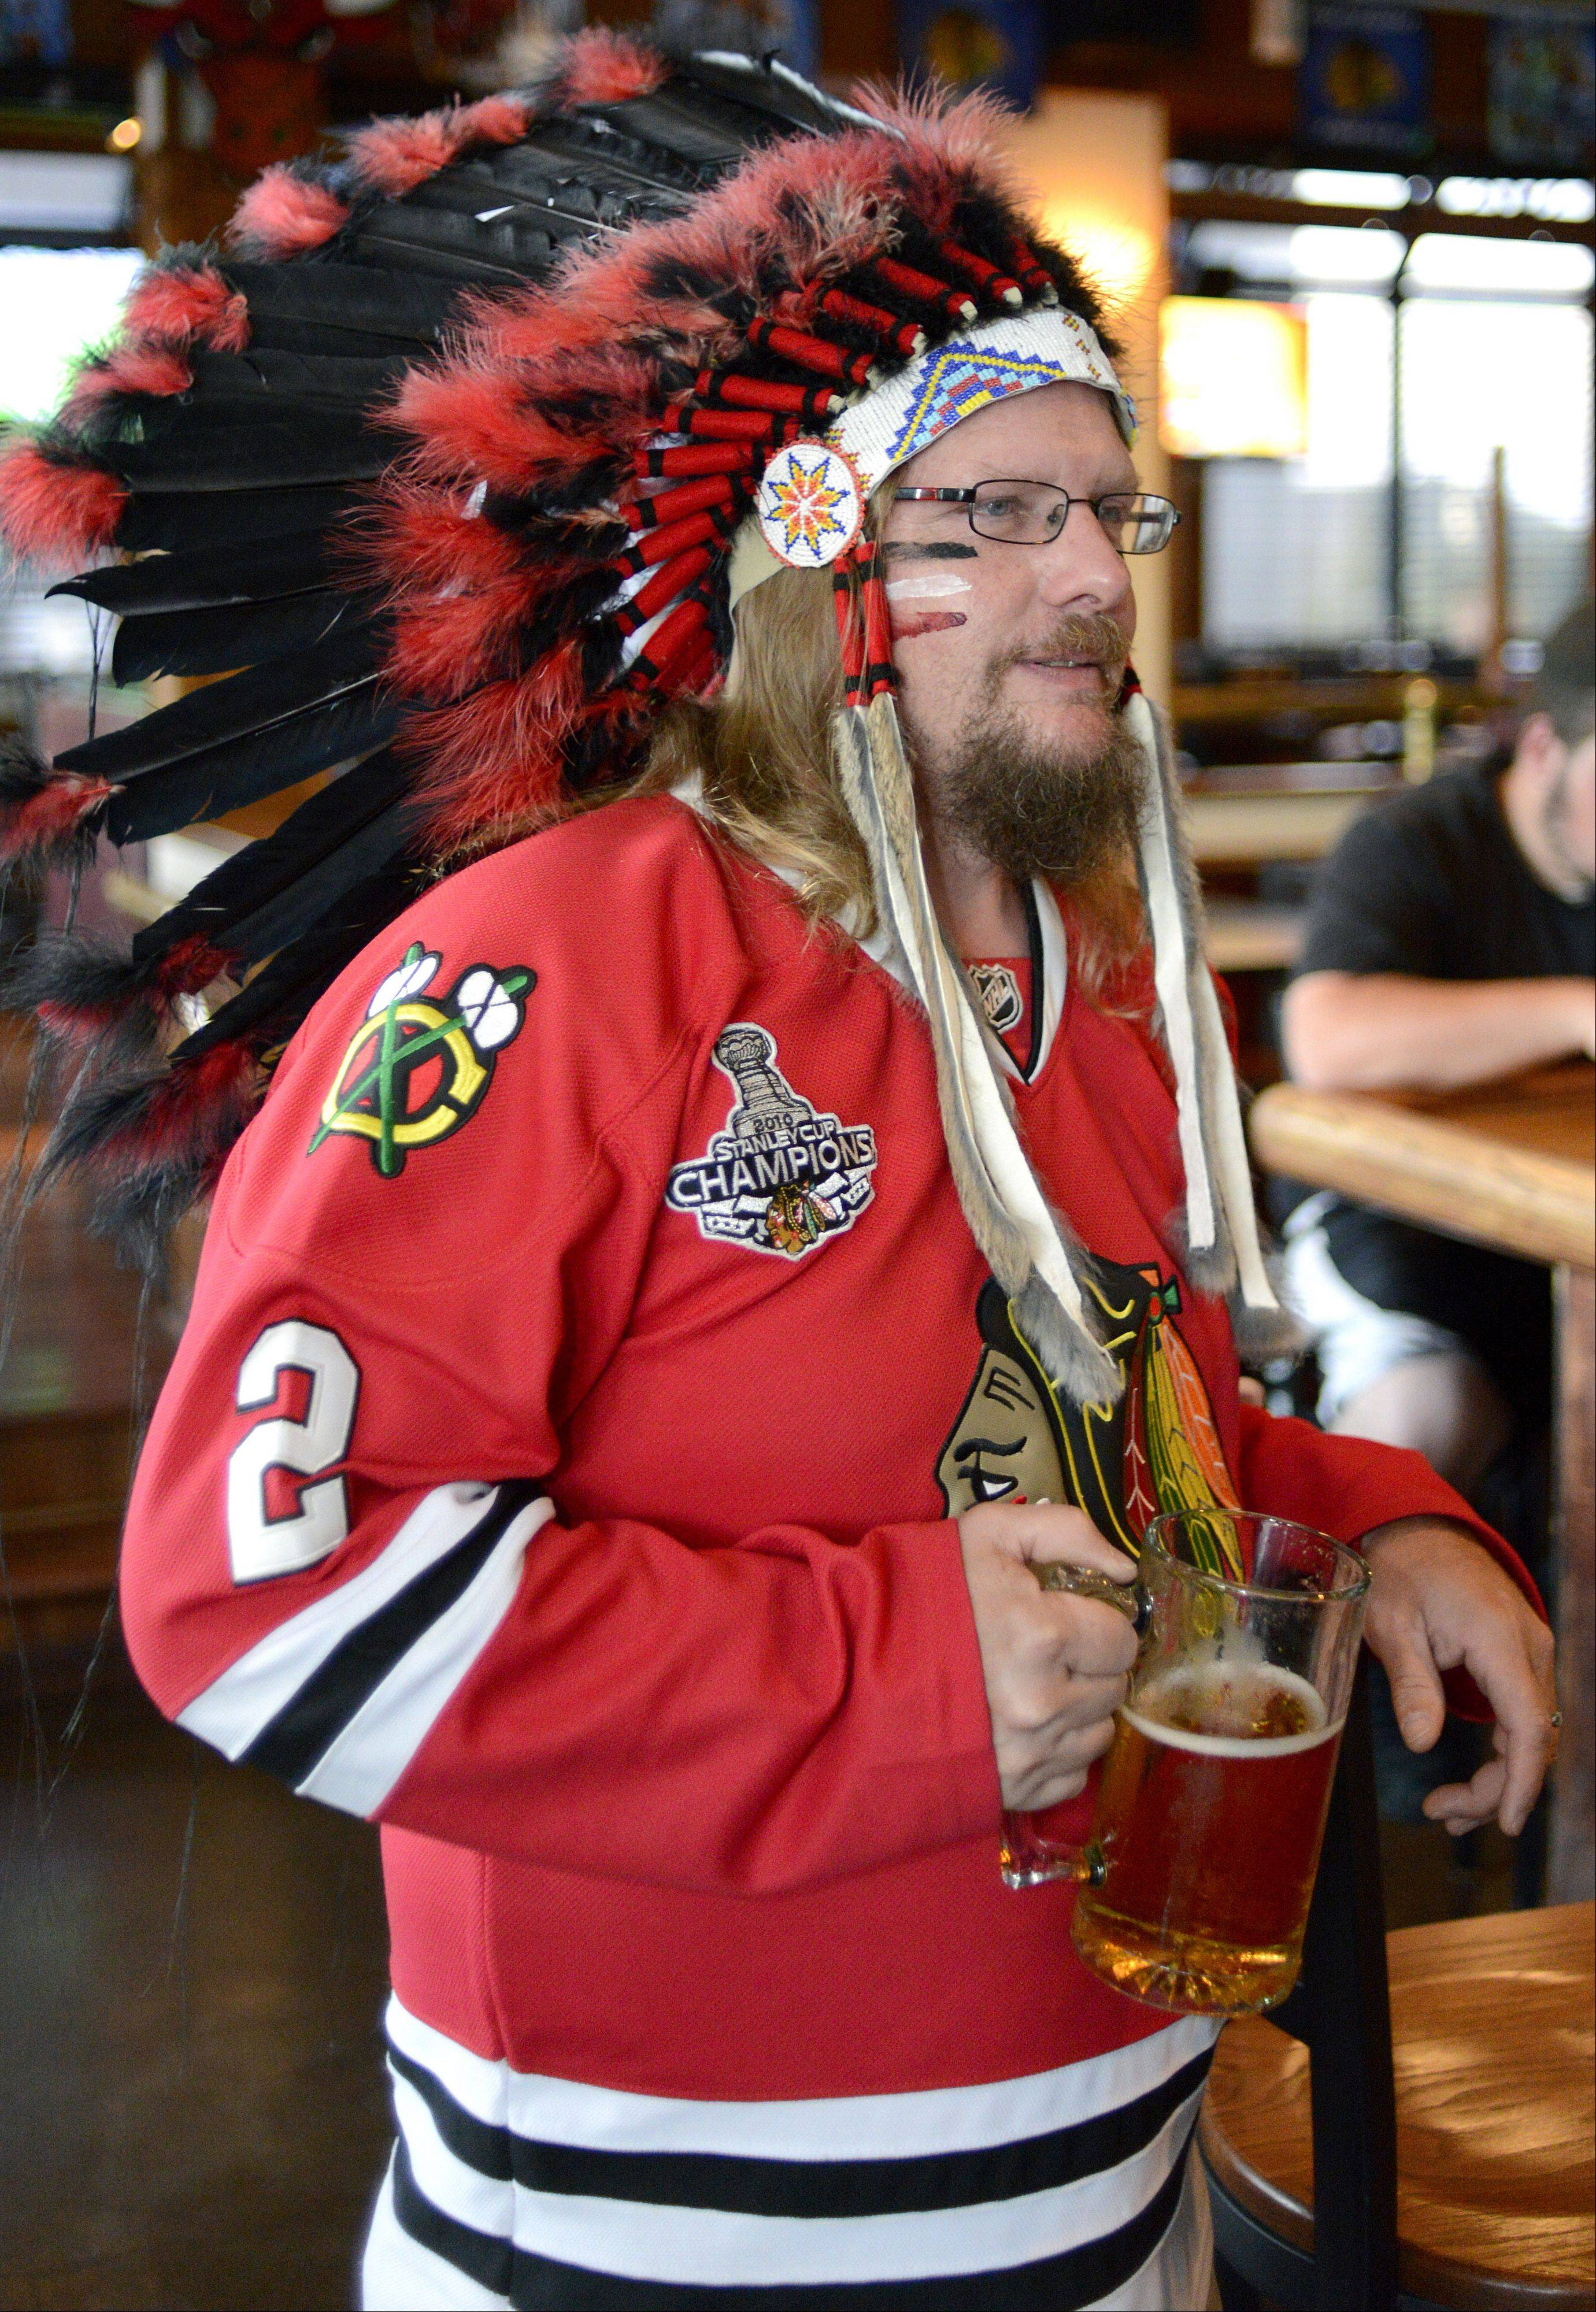 Andy Haas of Oswego is a regular at Chelios' Pub & Grill in Aurora. He's been a Blackhawks fan for about 20 years. He started wearing the headdress to the bar when the team went to the finals.